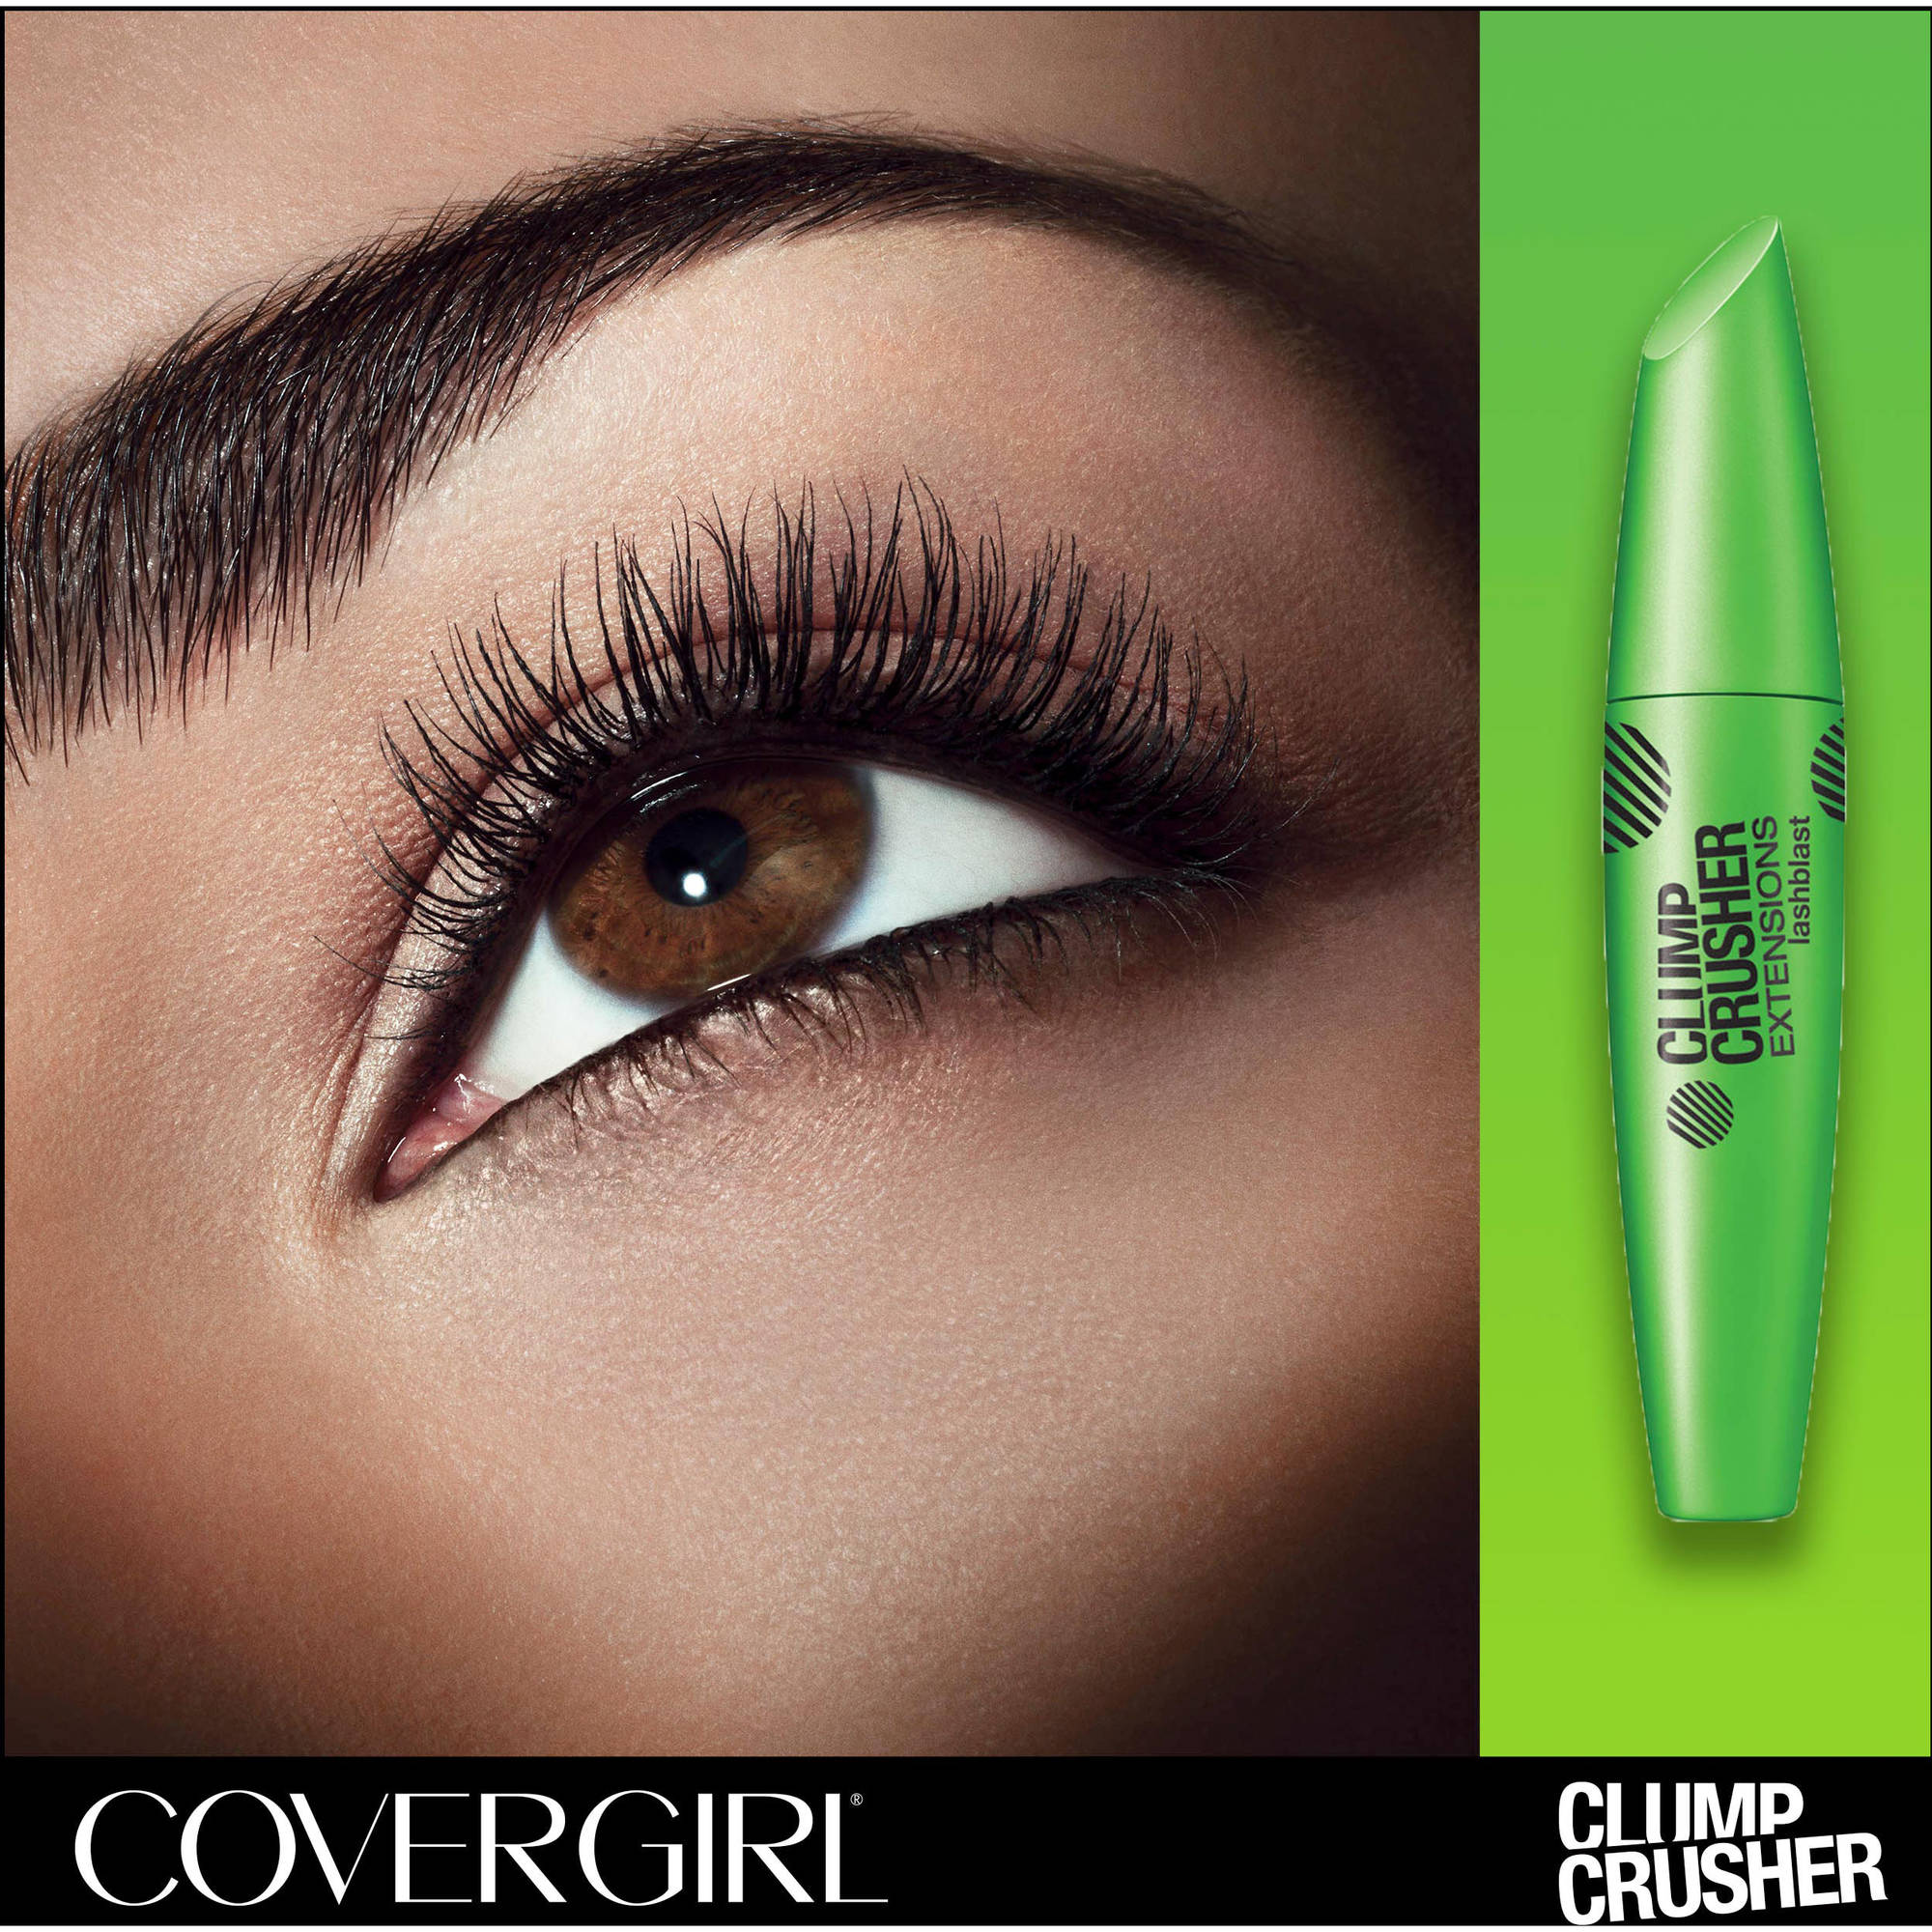 32103492324 COVERGIRL Clump Crusher Extensions Mascara, 840 Very Black - Walmart.com